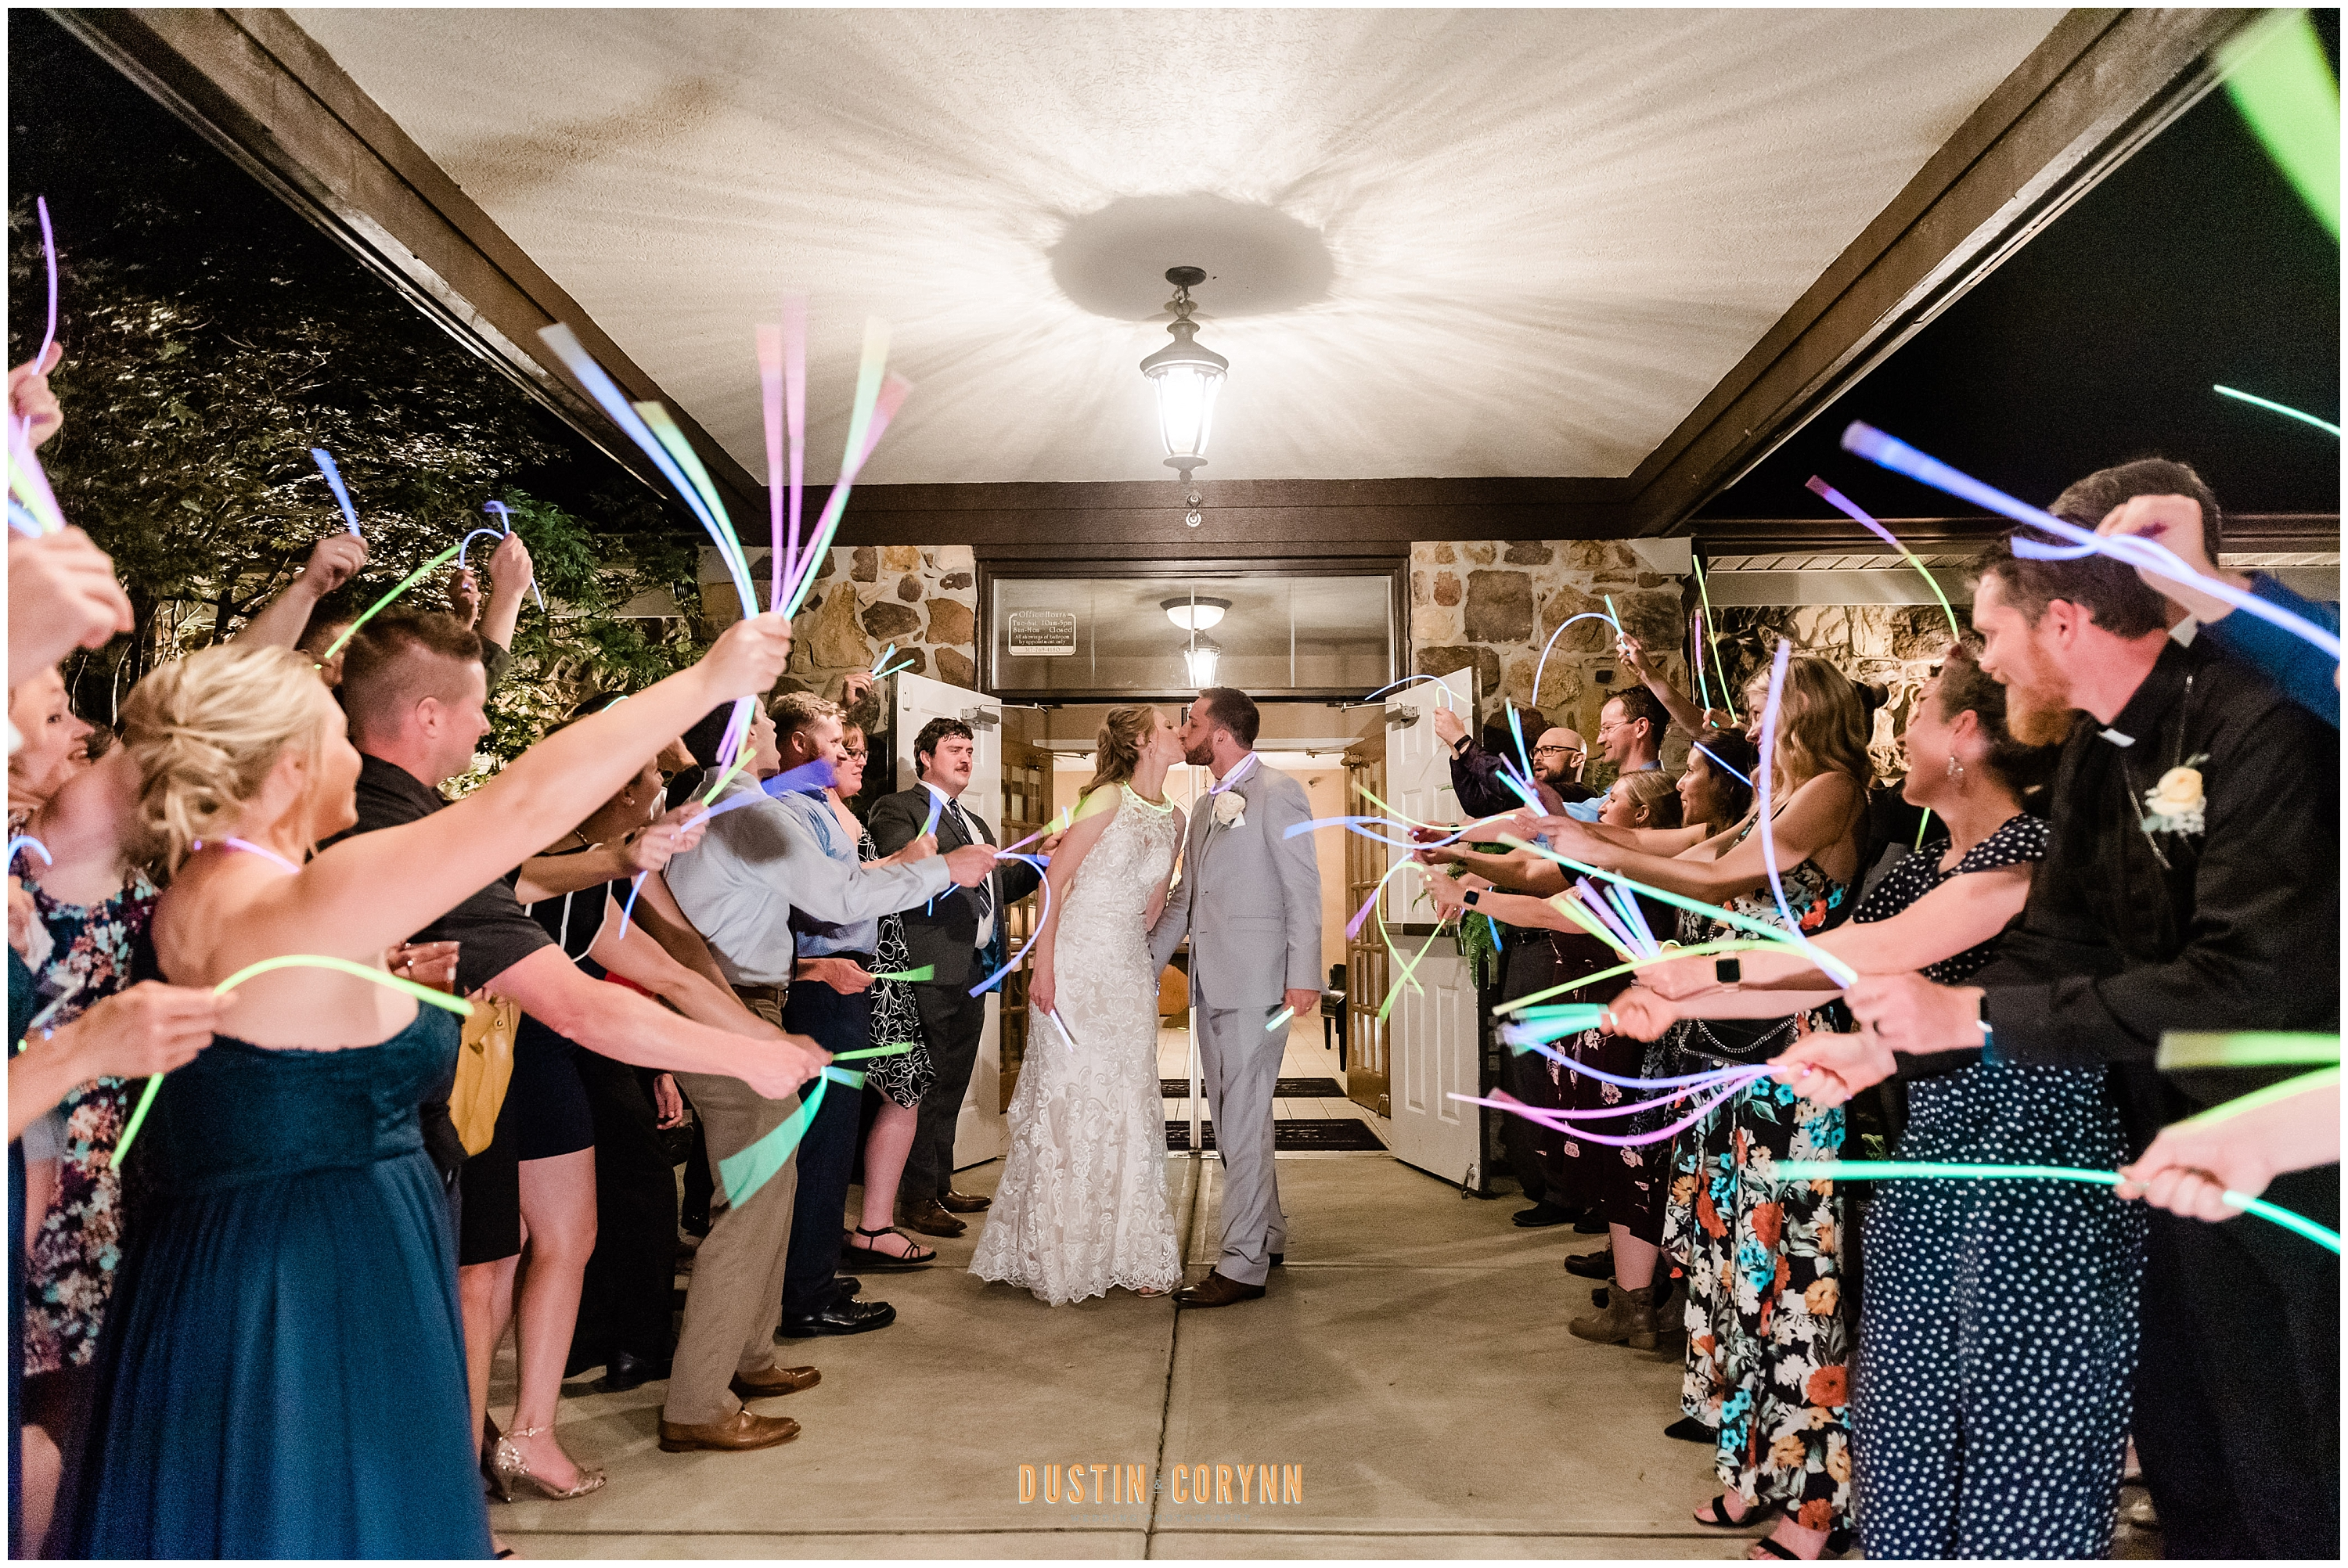 Glow Stick Exit at Carmel Wedding Reception